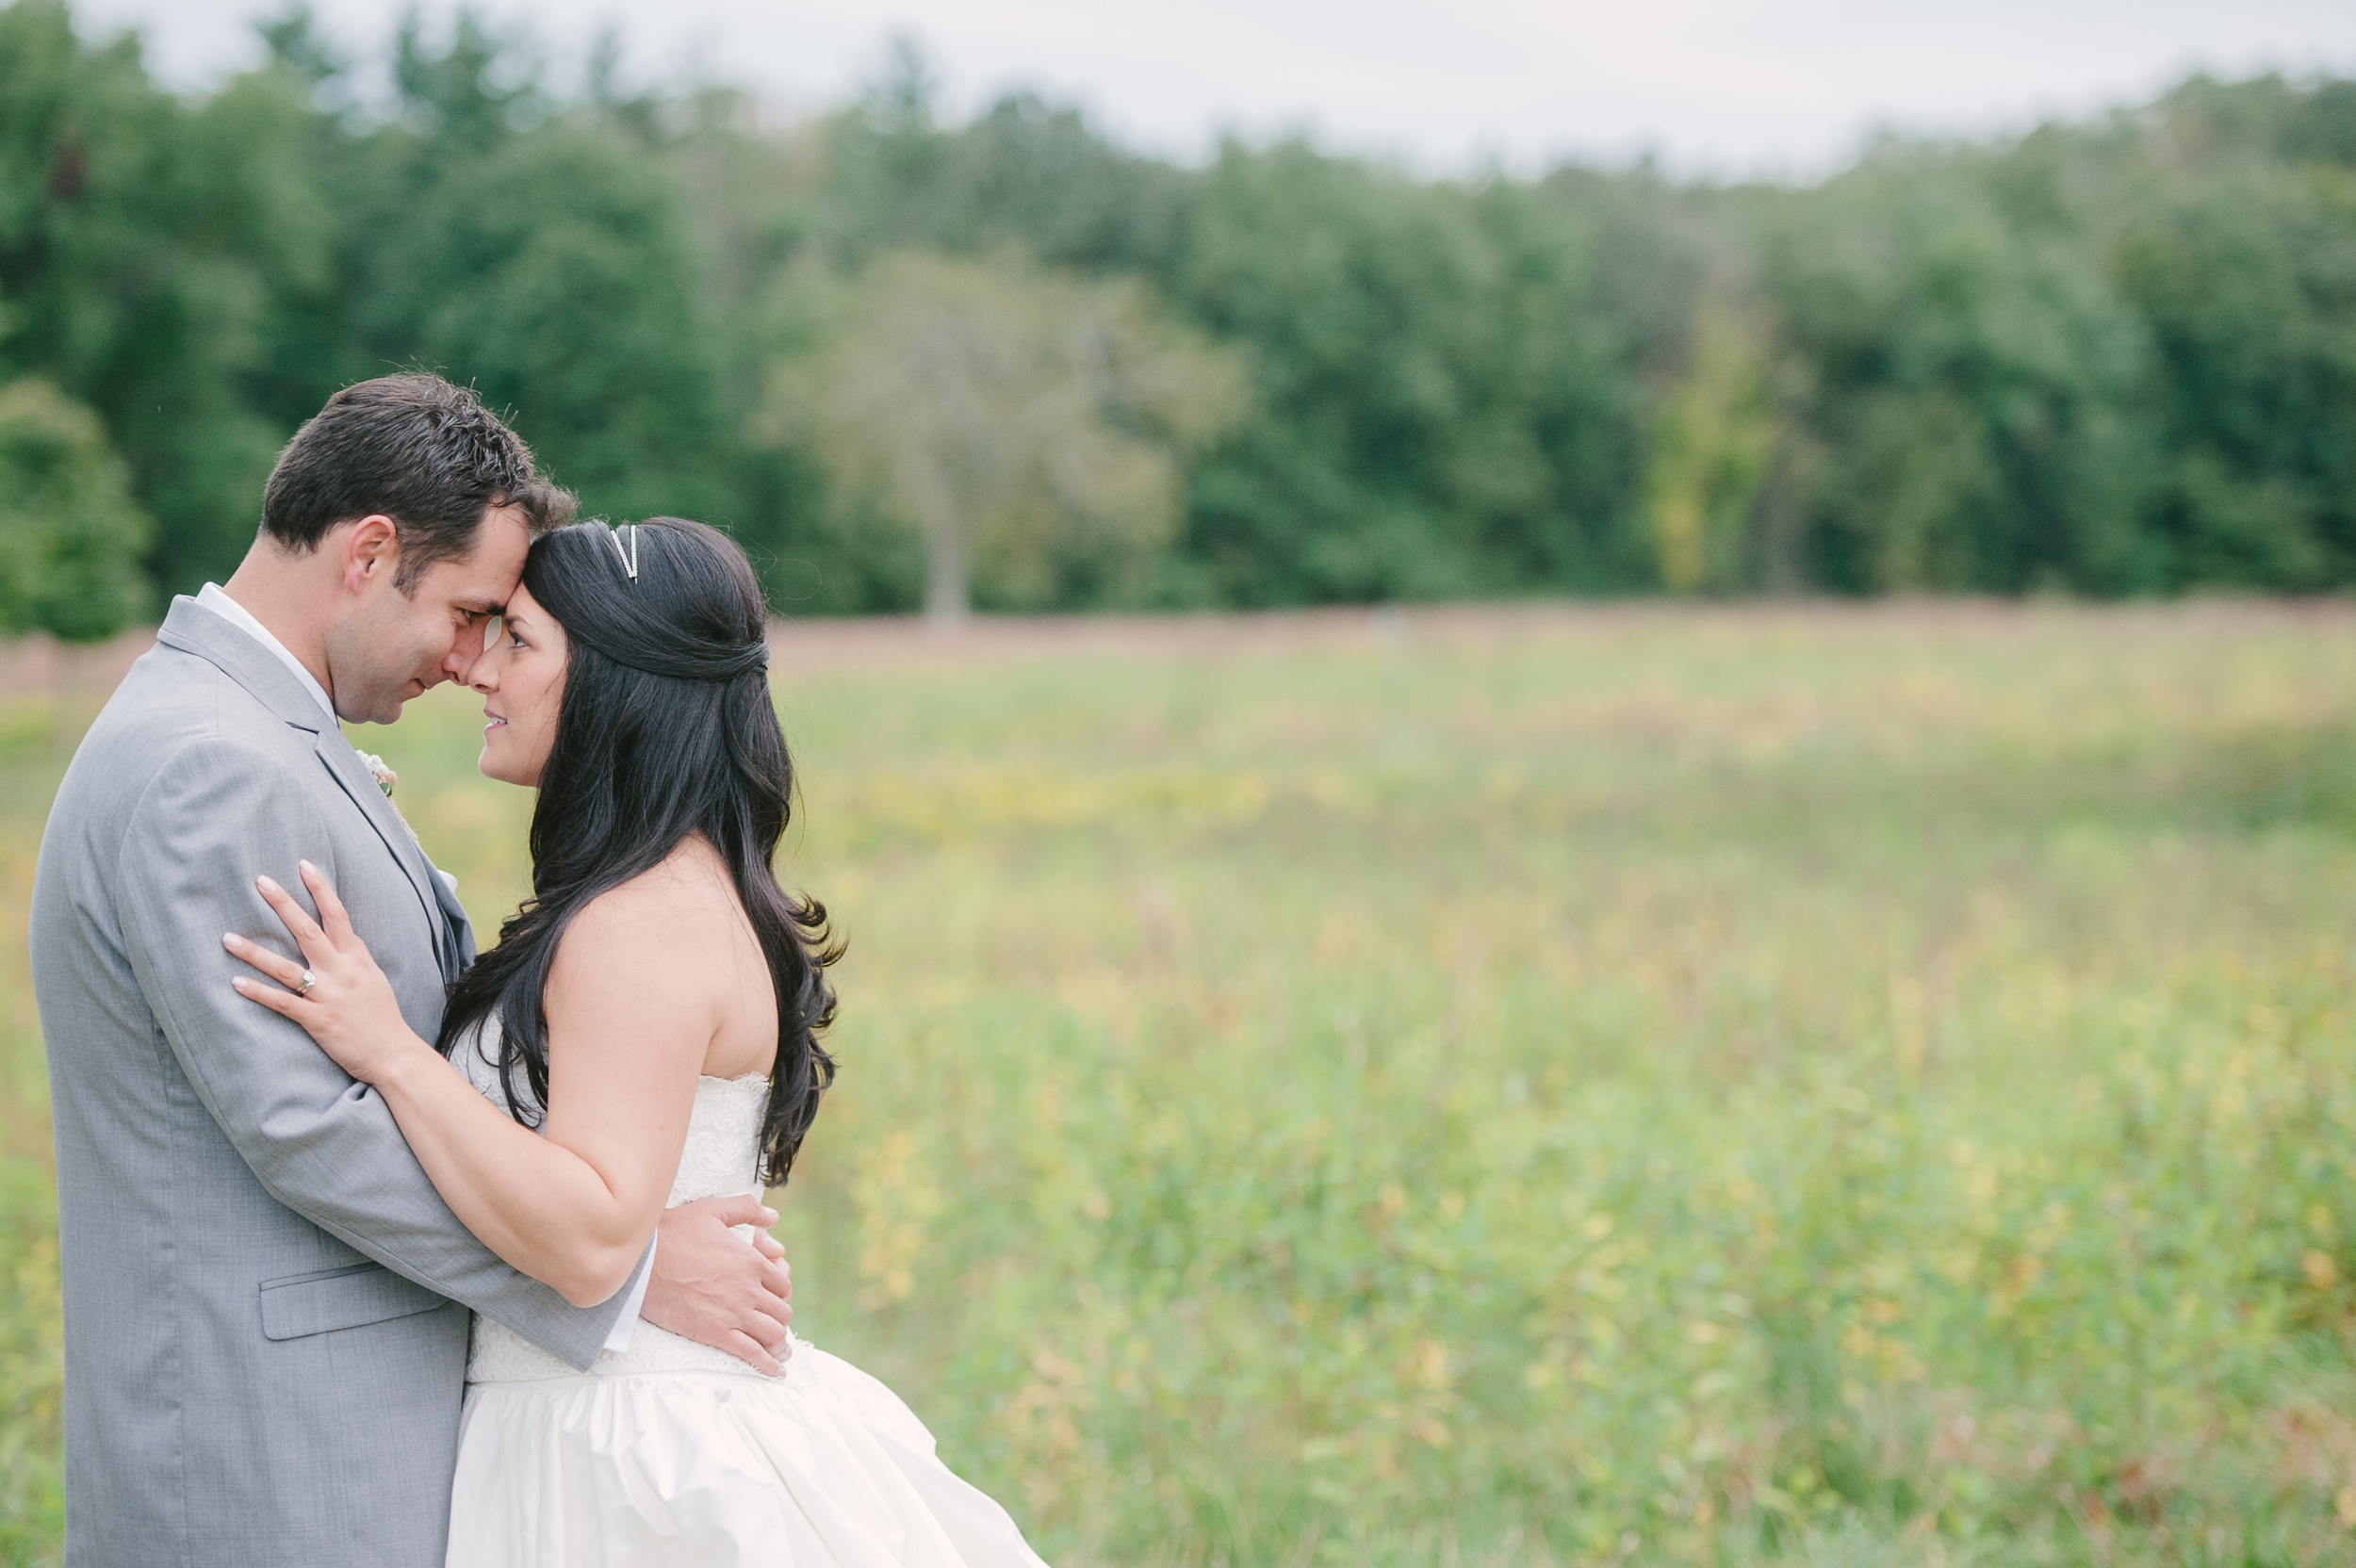 waveny_house_wedding_New_canaan_CT_Amy_Champagne_Events945.jpg